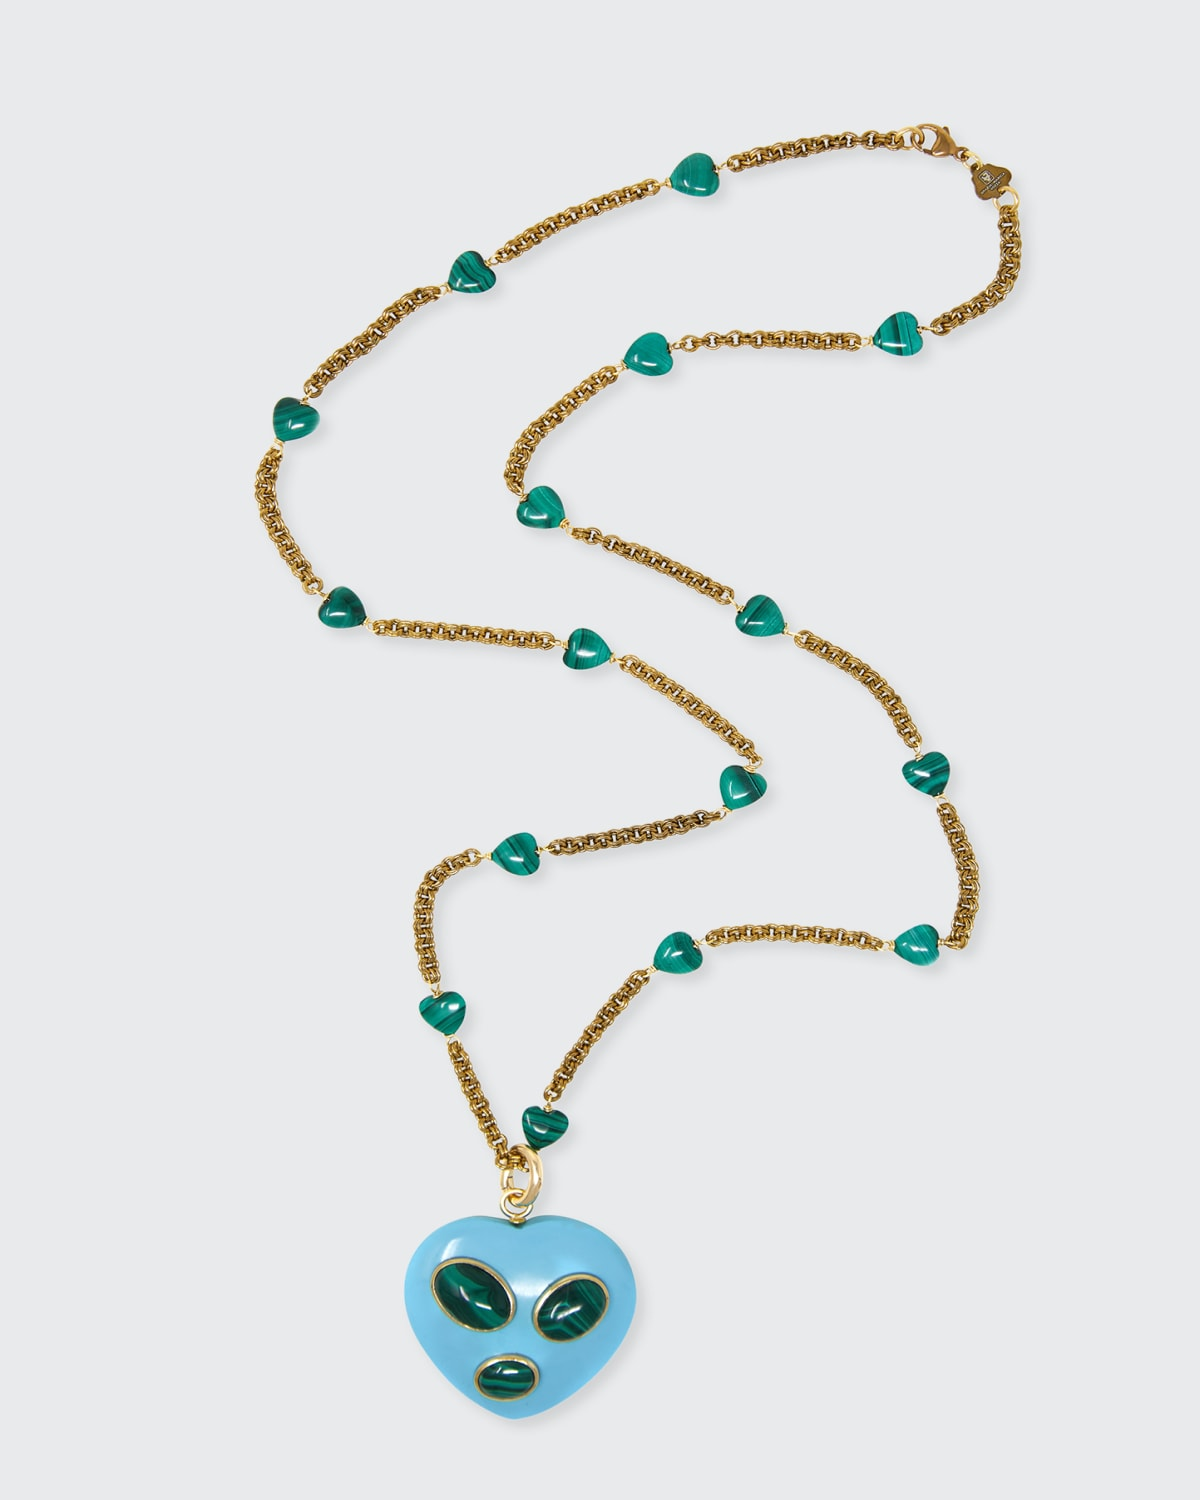 Turquoise and Malachite Heart Charm Necklace